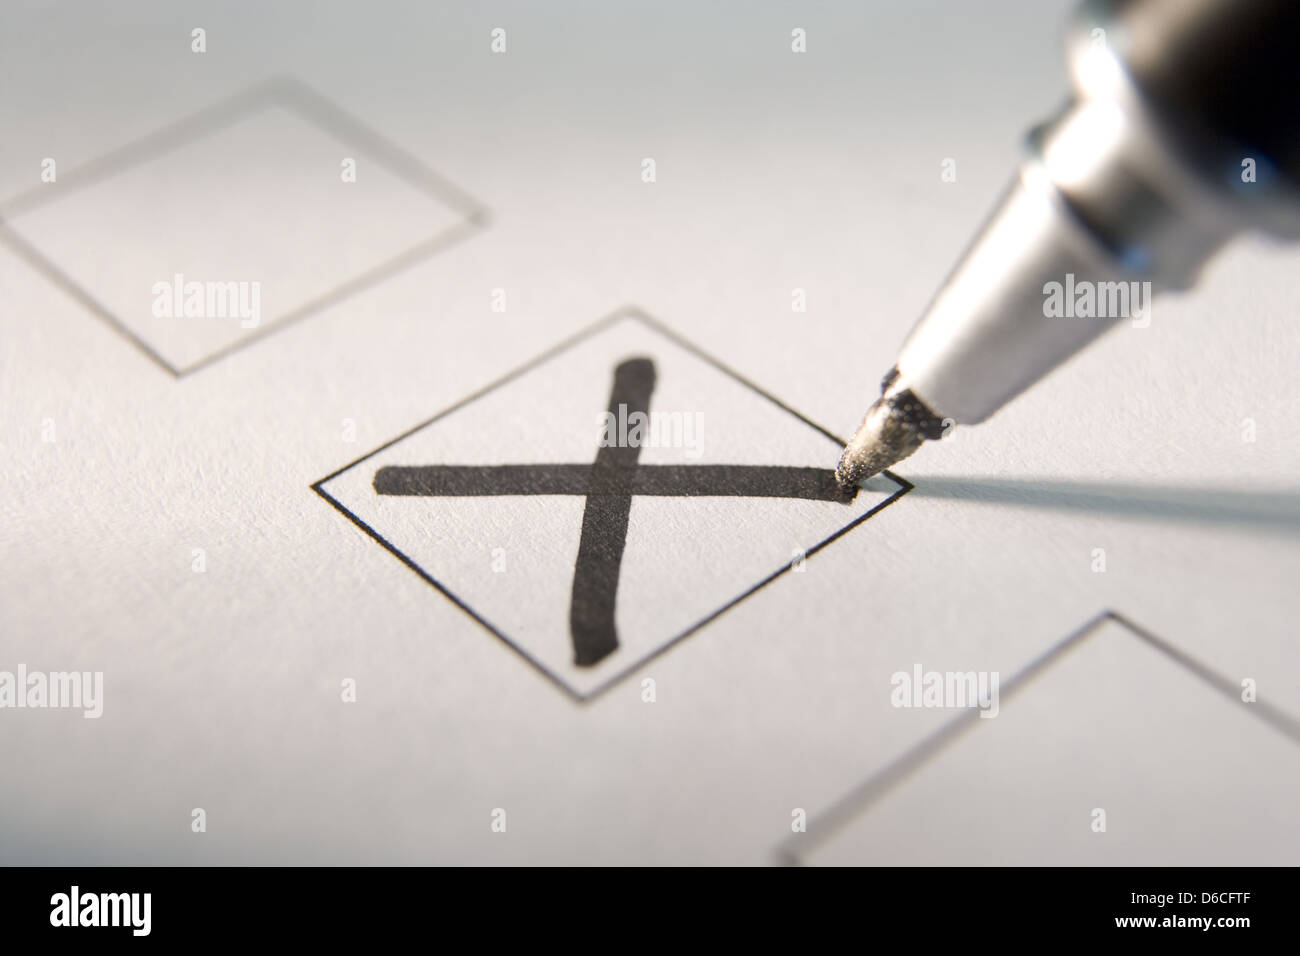 cross,ticking,choose,checklist - Stock Image